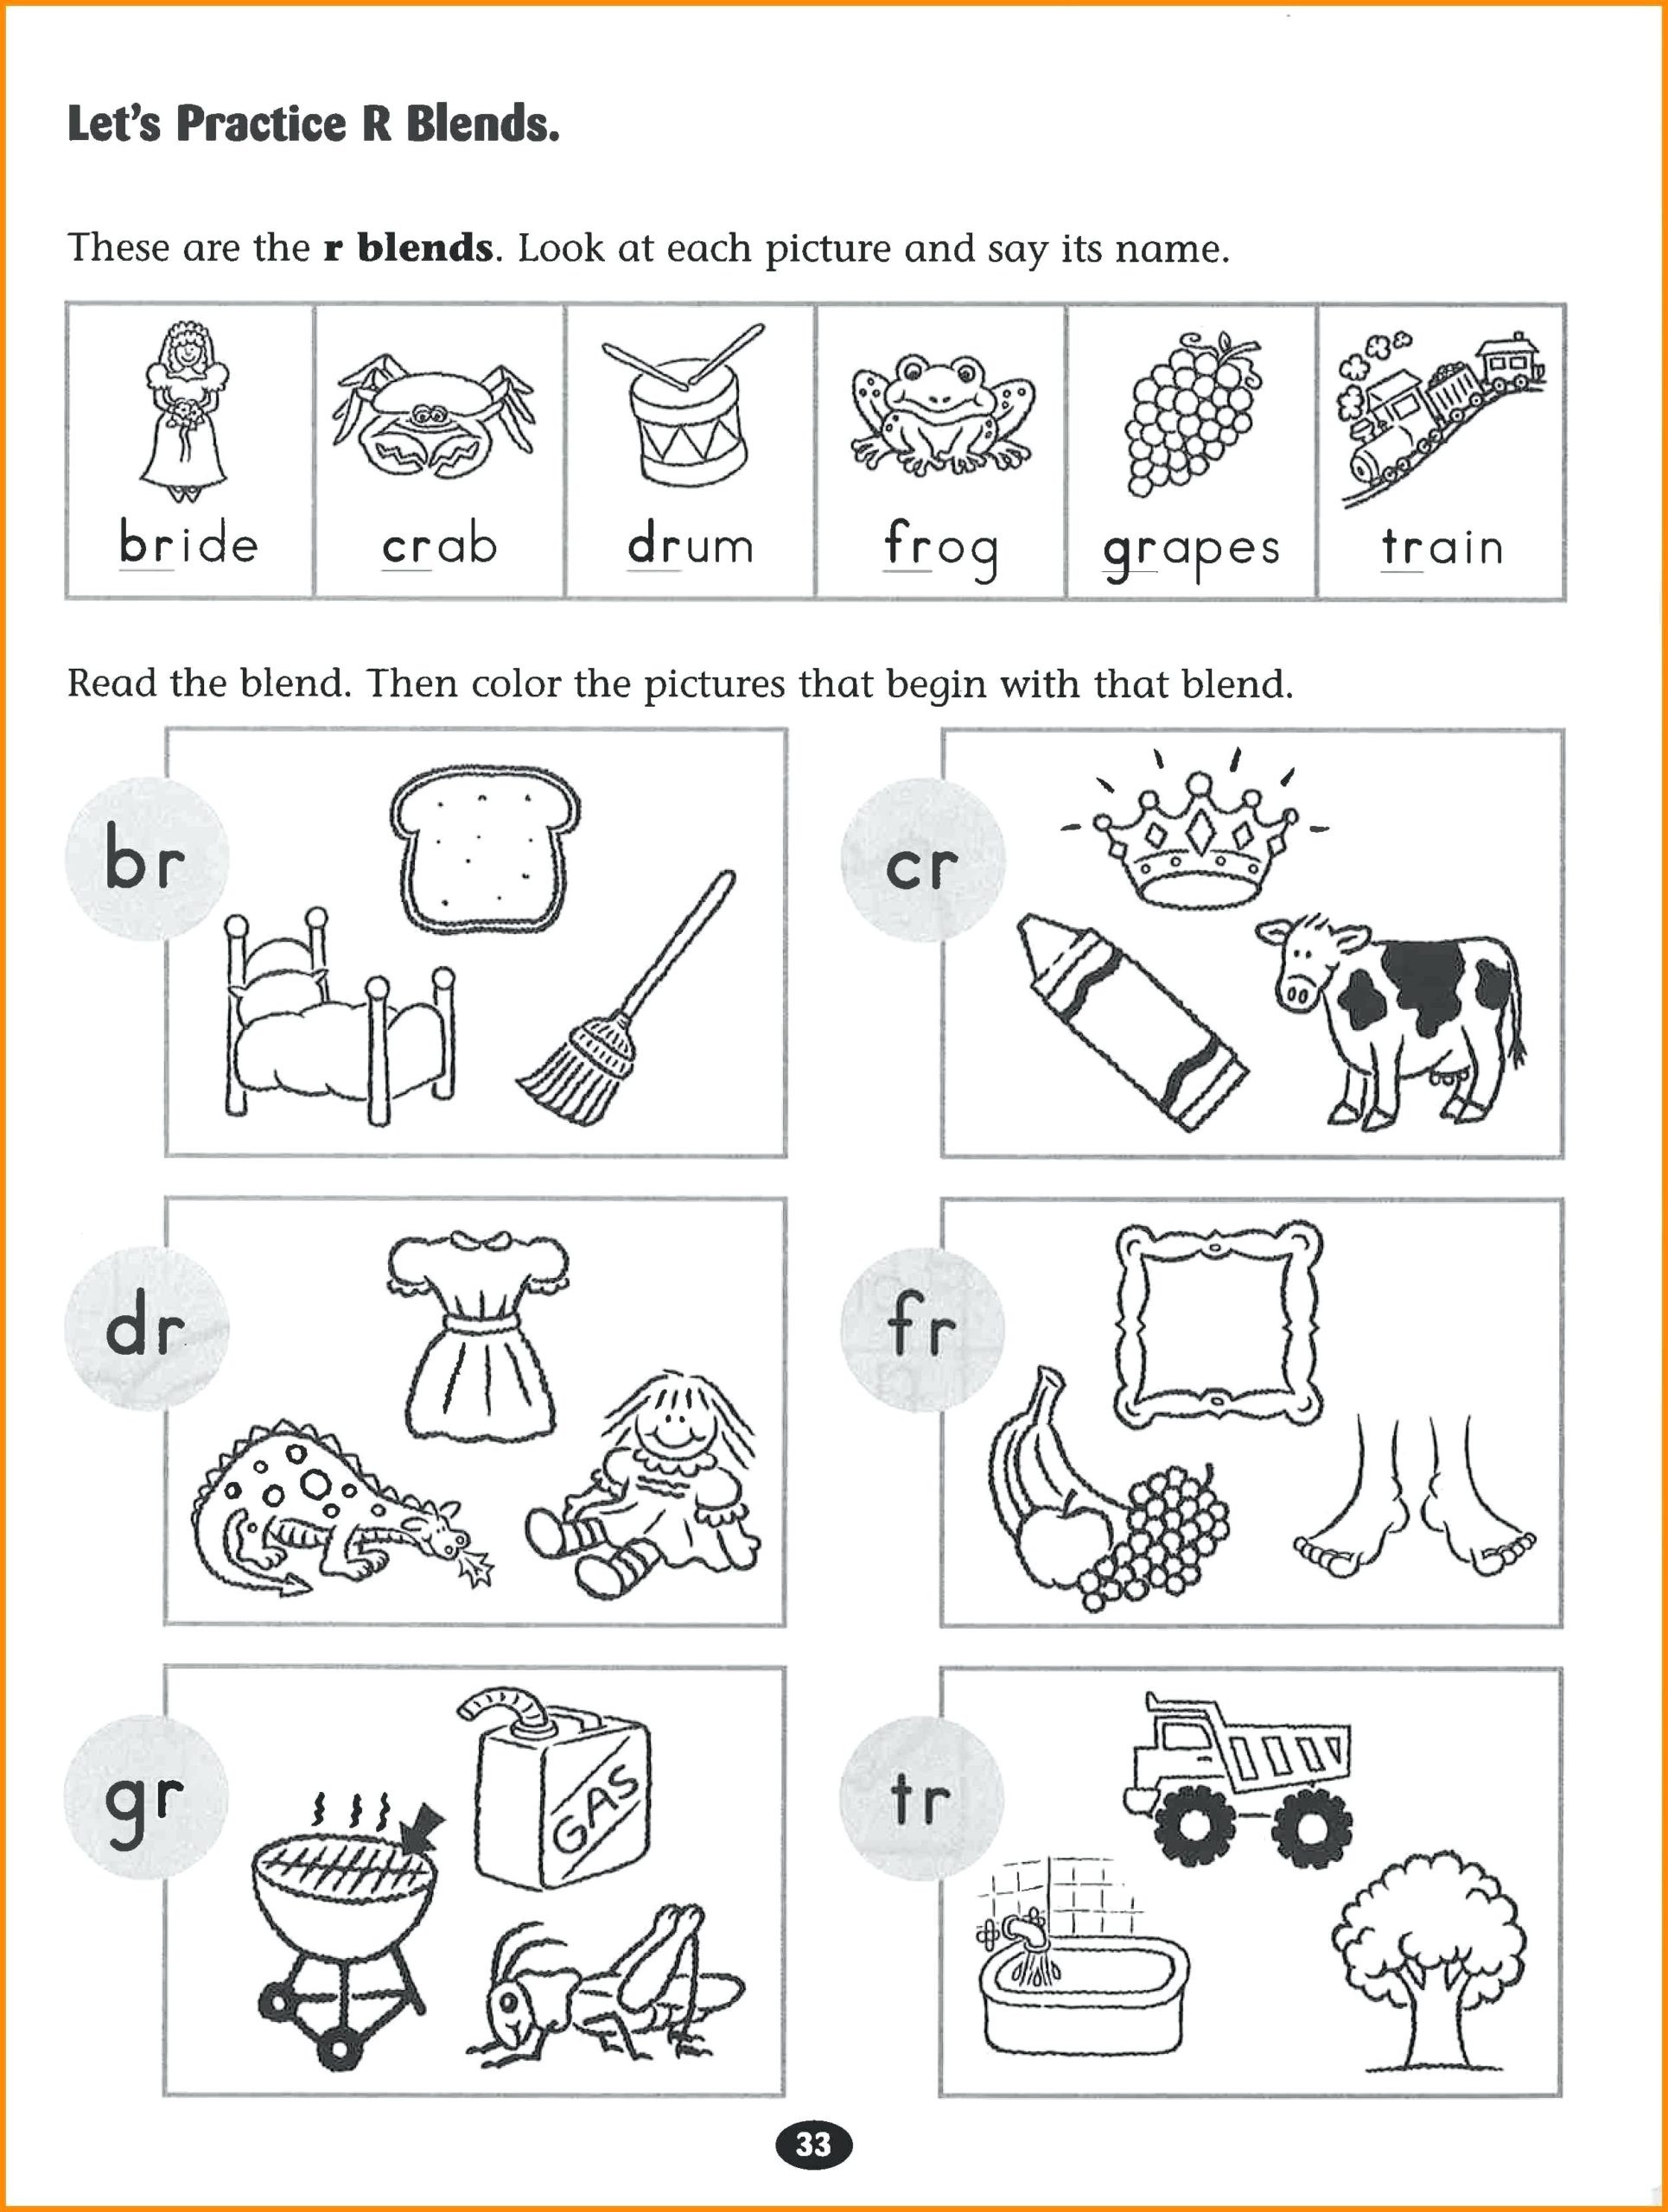 Zaner Bloser Handwriting Worksheet Worksheet English for Kid Beginners Zaner Bloser Cursive